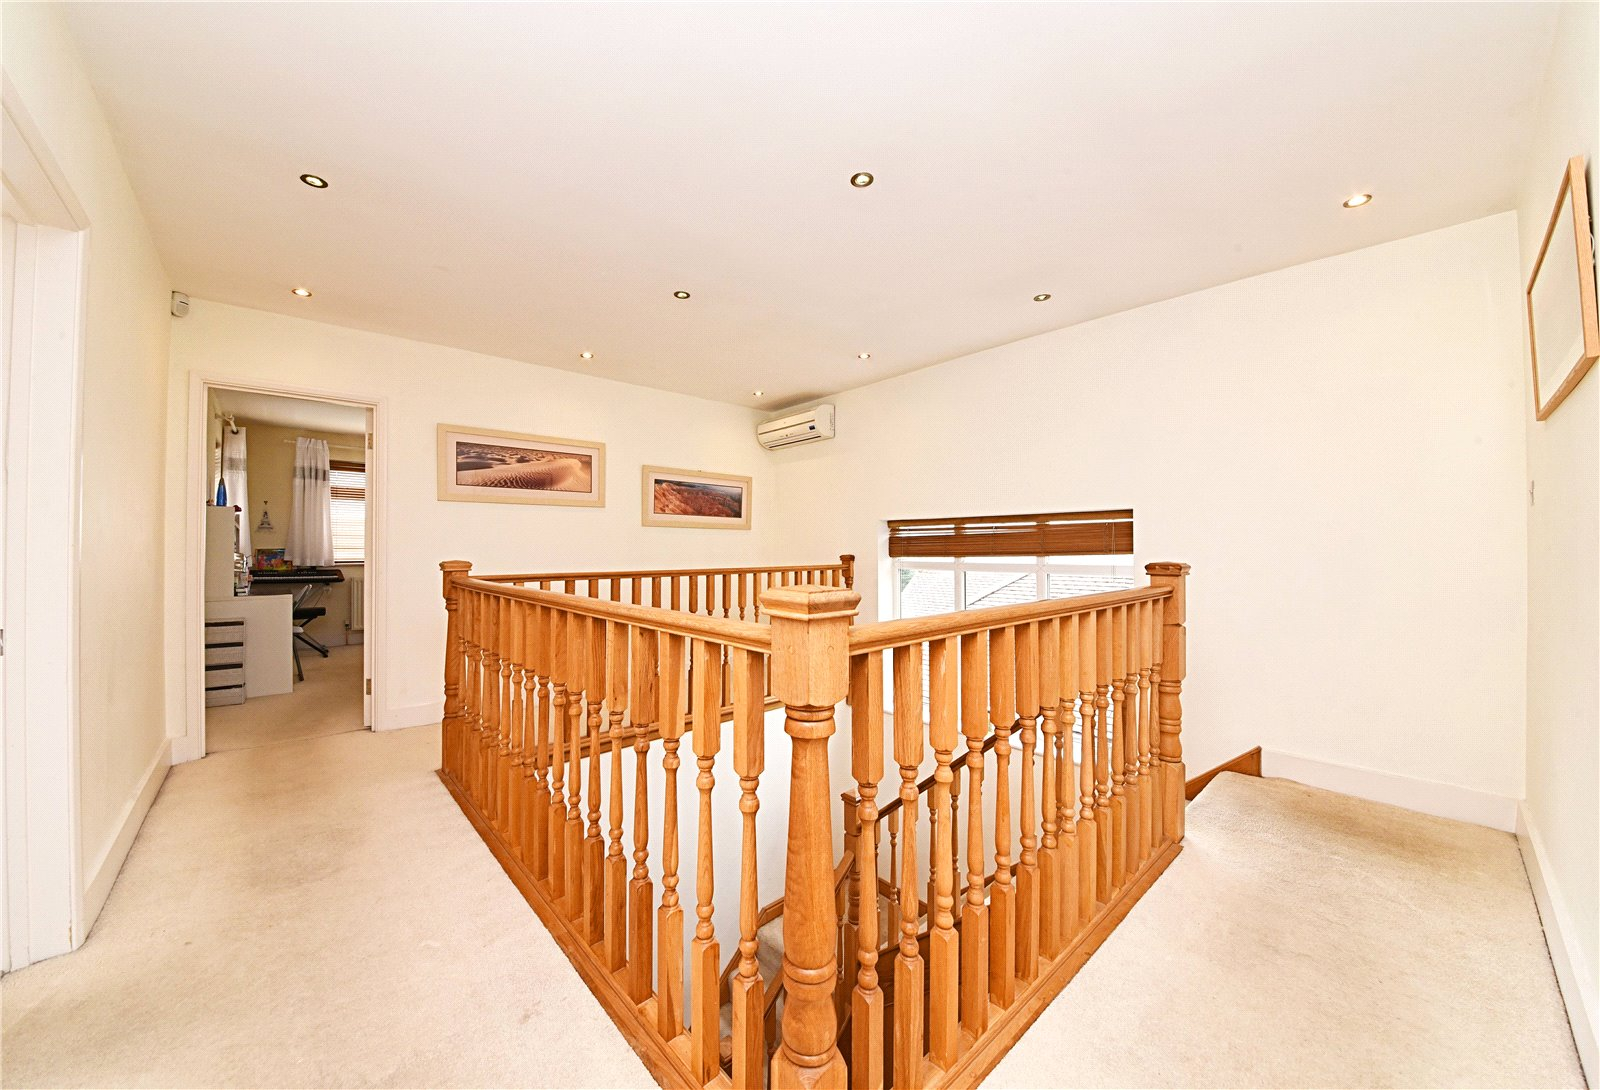 4 bed house for sale in Stanmore, HA7 3AZ 13